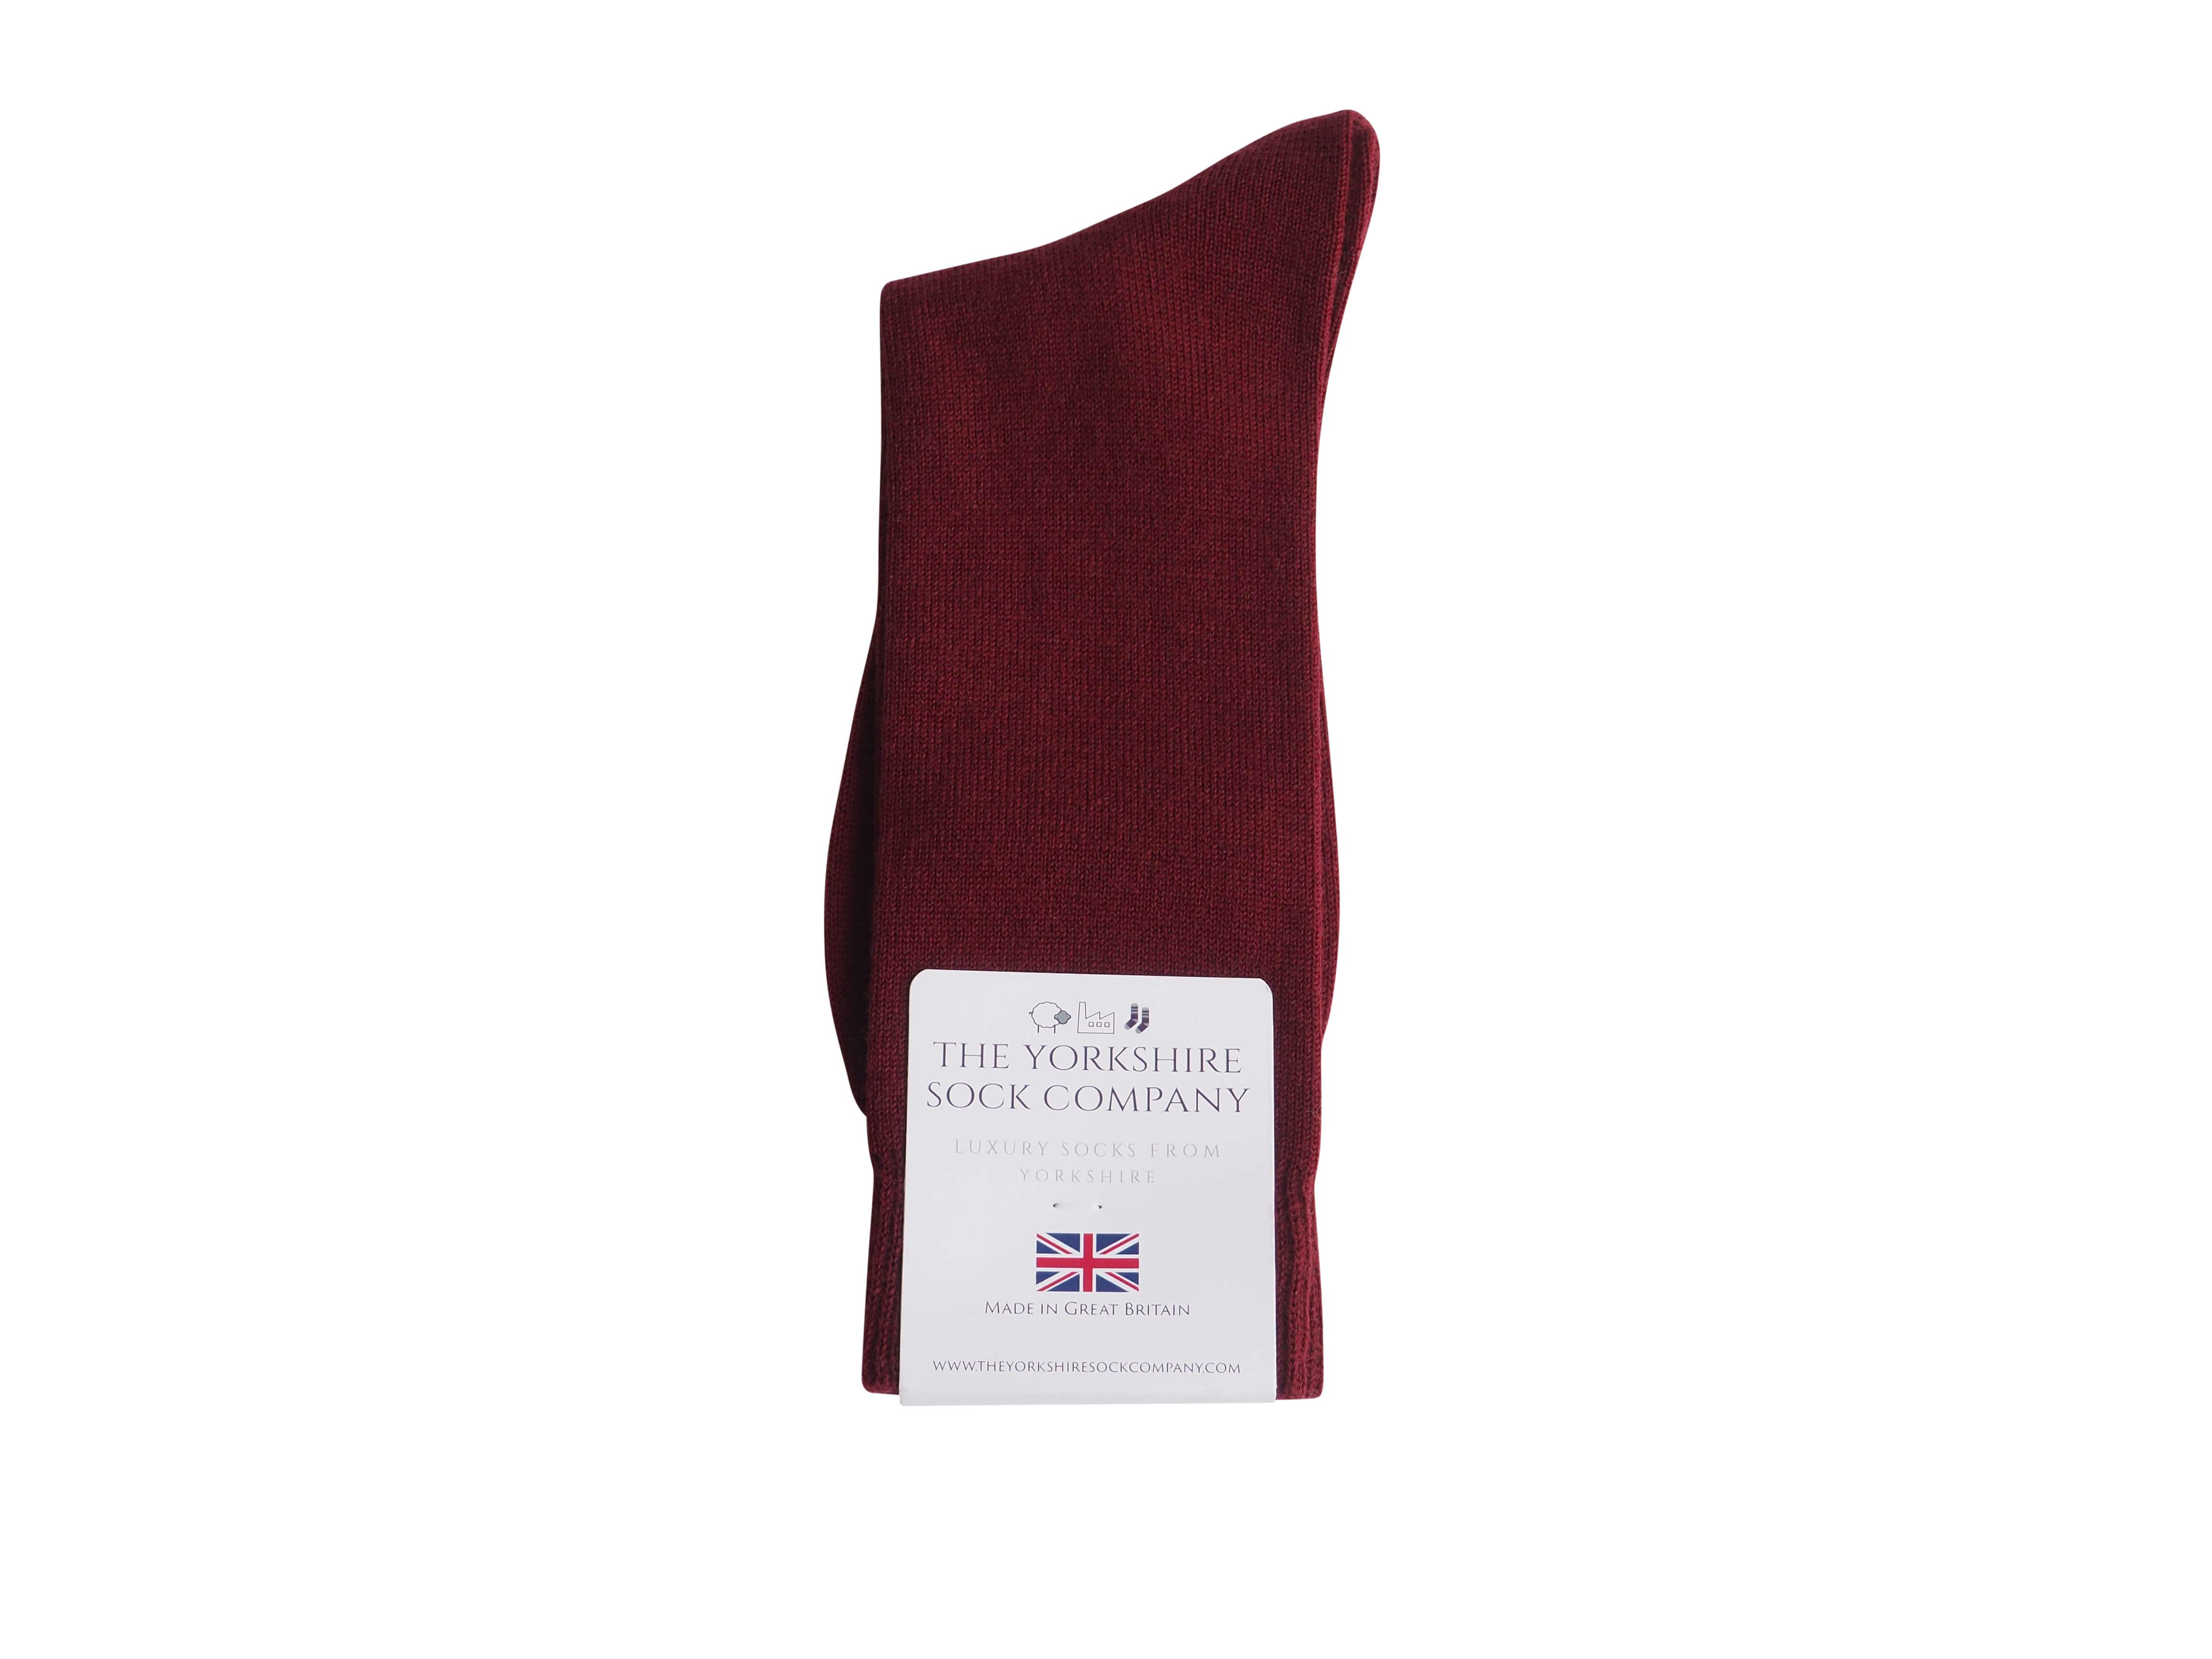 natural-merino-wool-yorkshire-socks-black-burgundy-packed